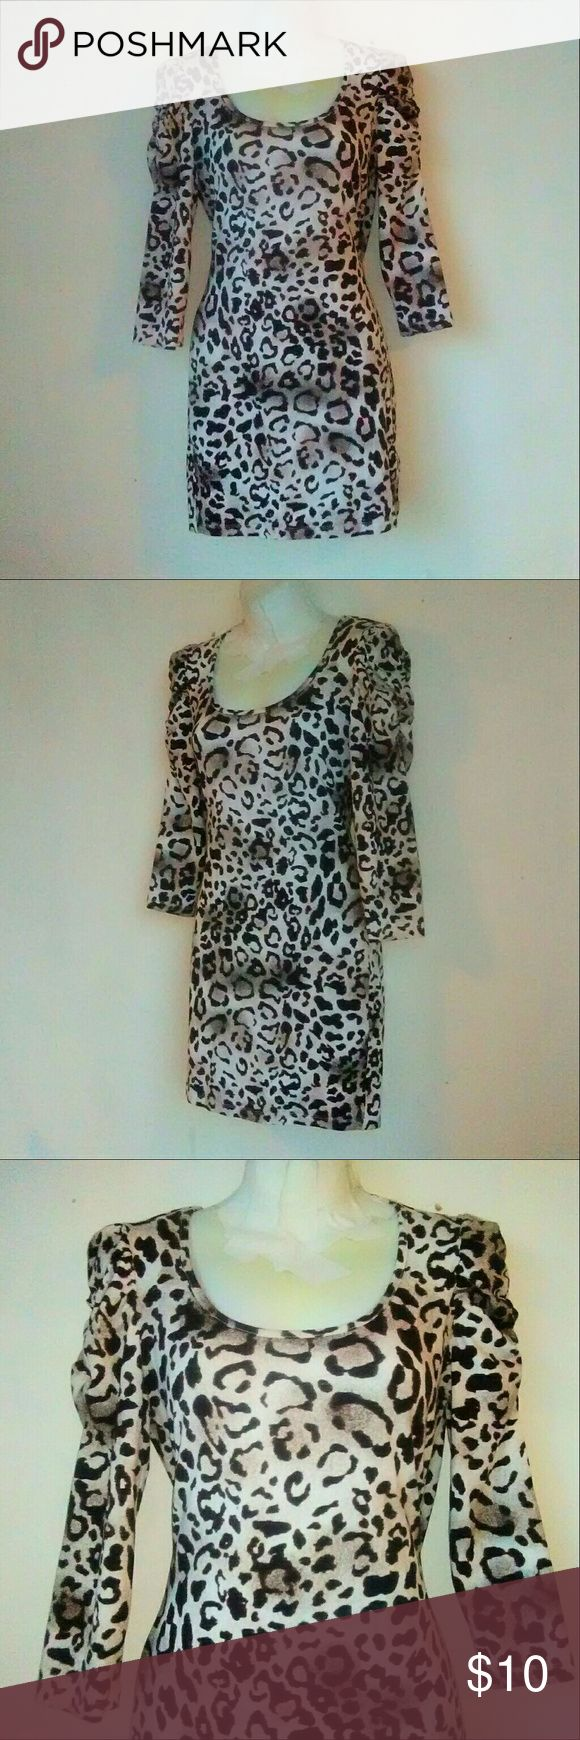 Forever 21 Animal Print Mini Dress Body con mini dress with brown tan and cream print. Material is 96%cotton 4%elastane. Excellent like new condition. B2 Forever 21 Dresses Mini